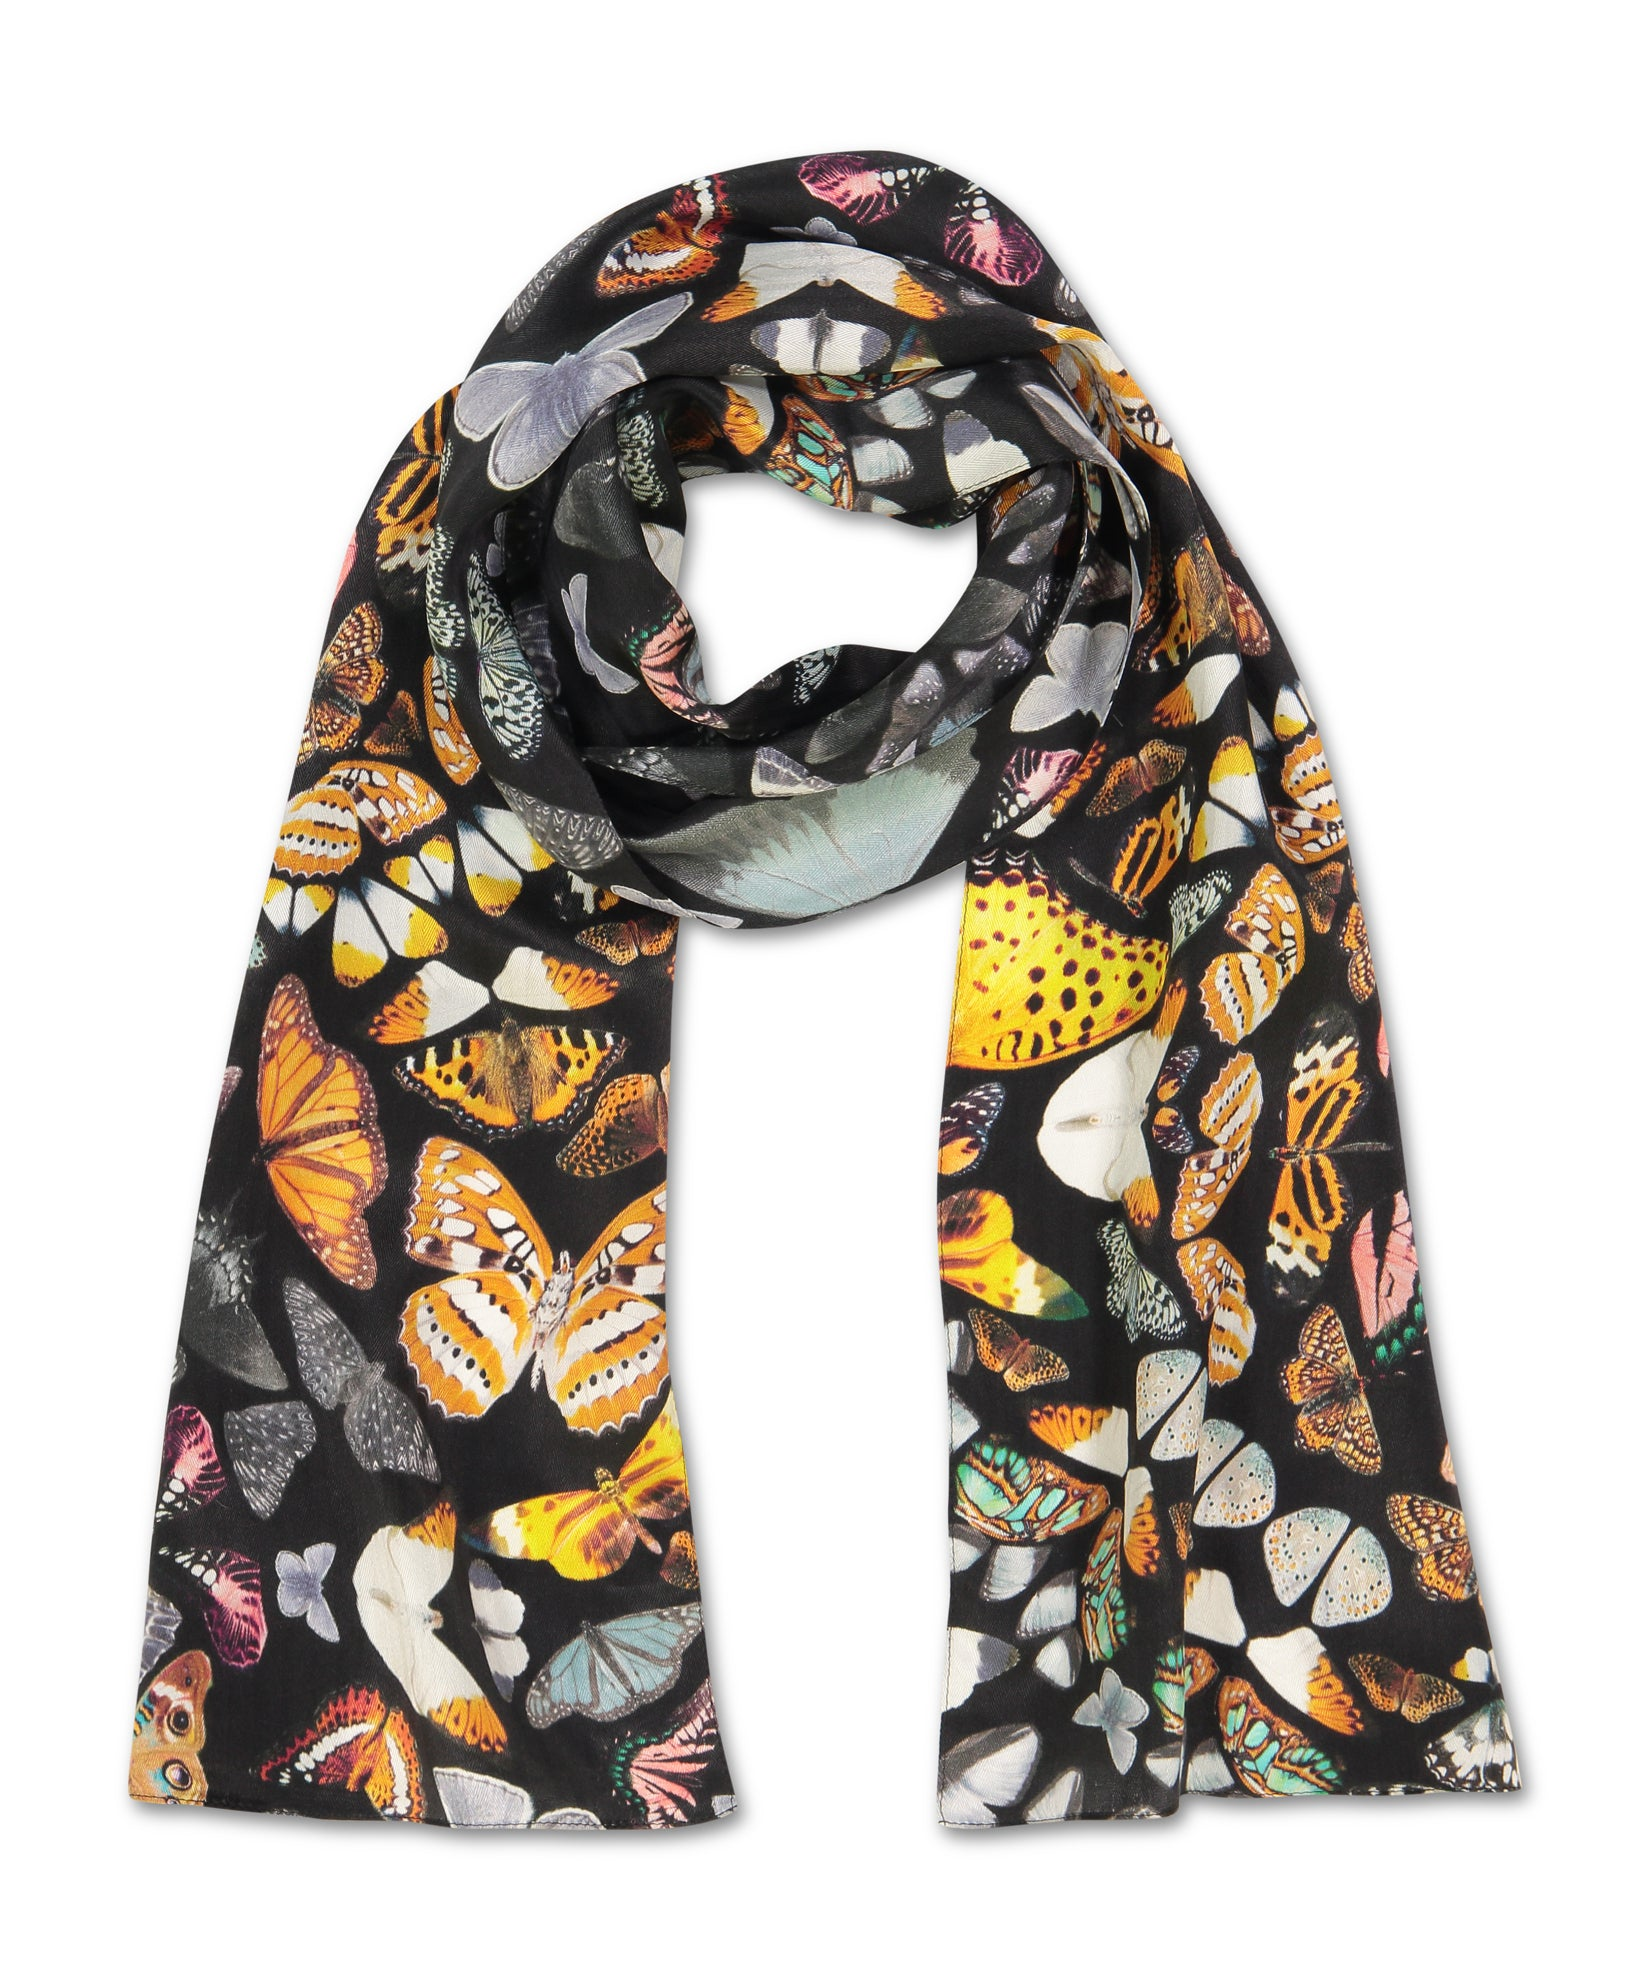 Black - Giving Me Butterflies Silk Oblong